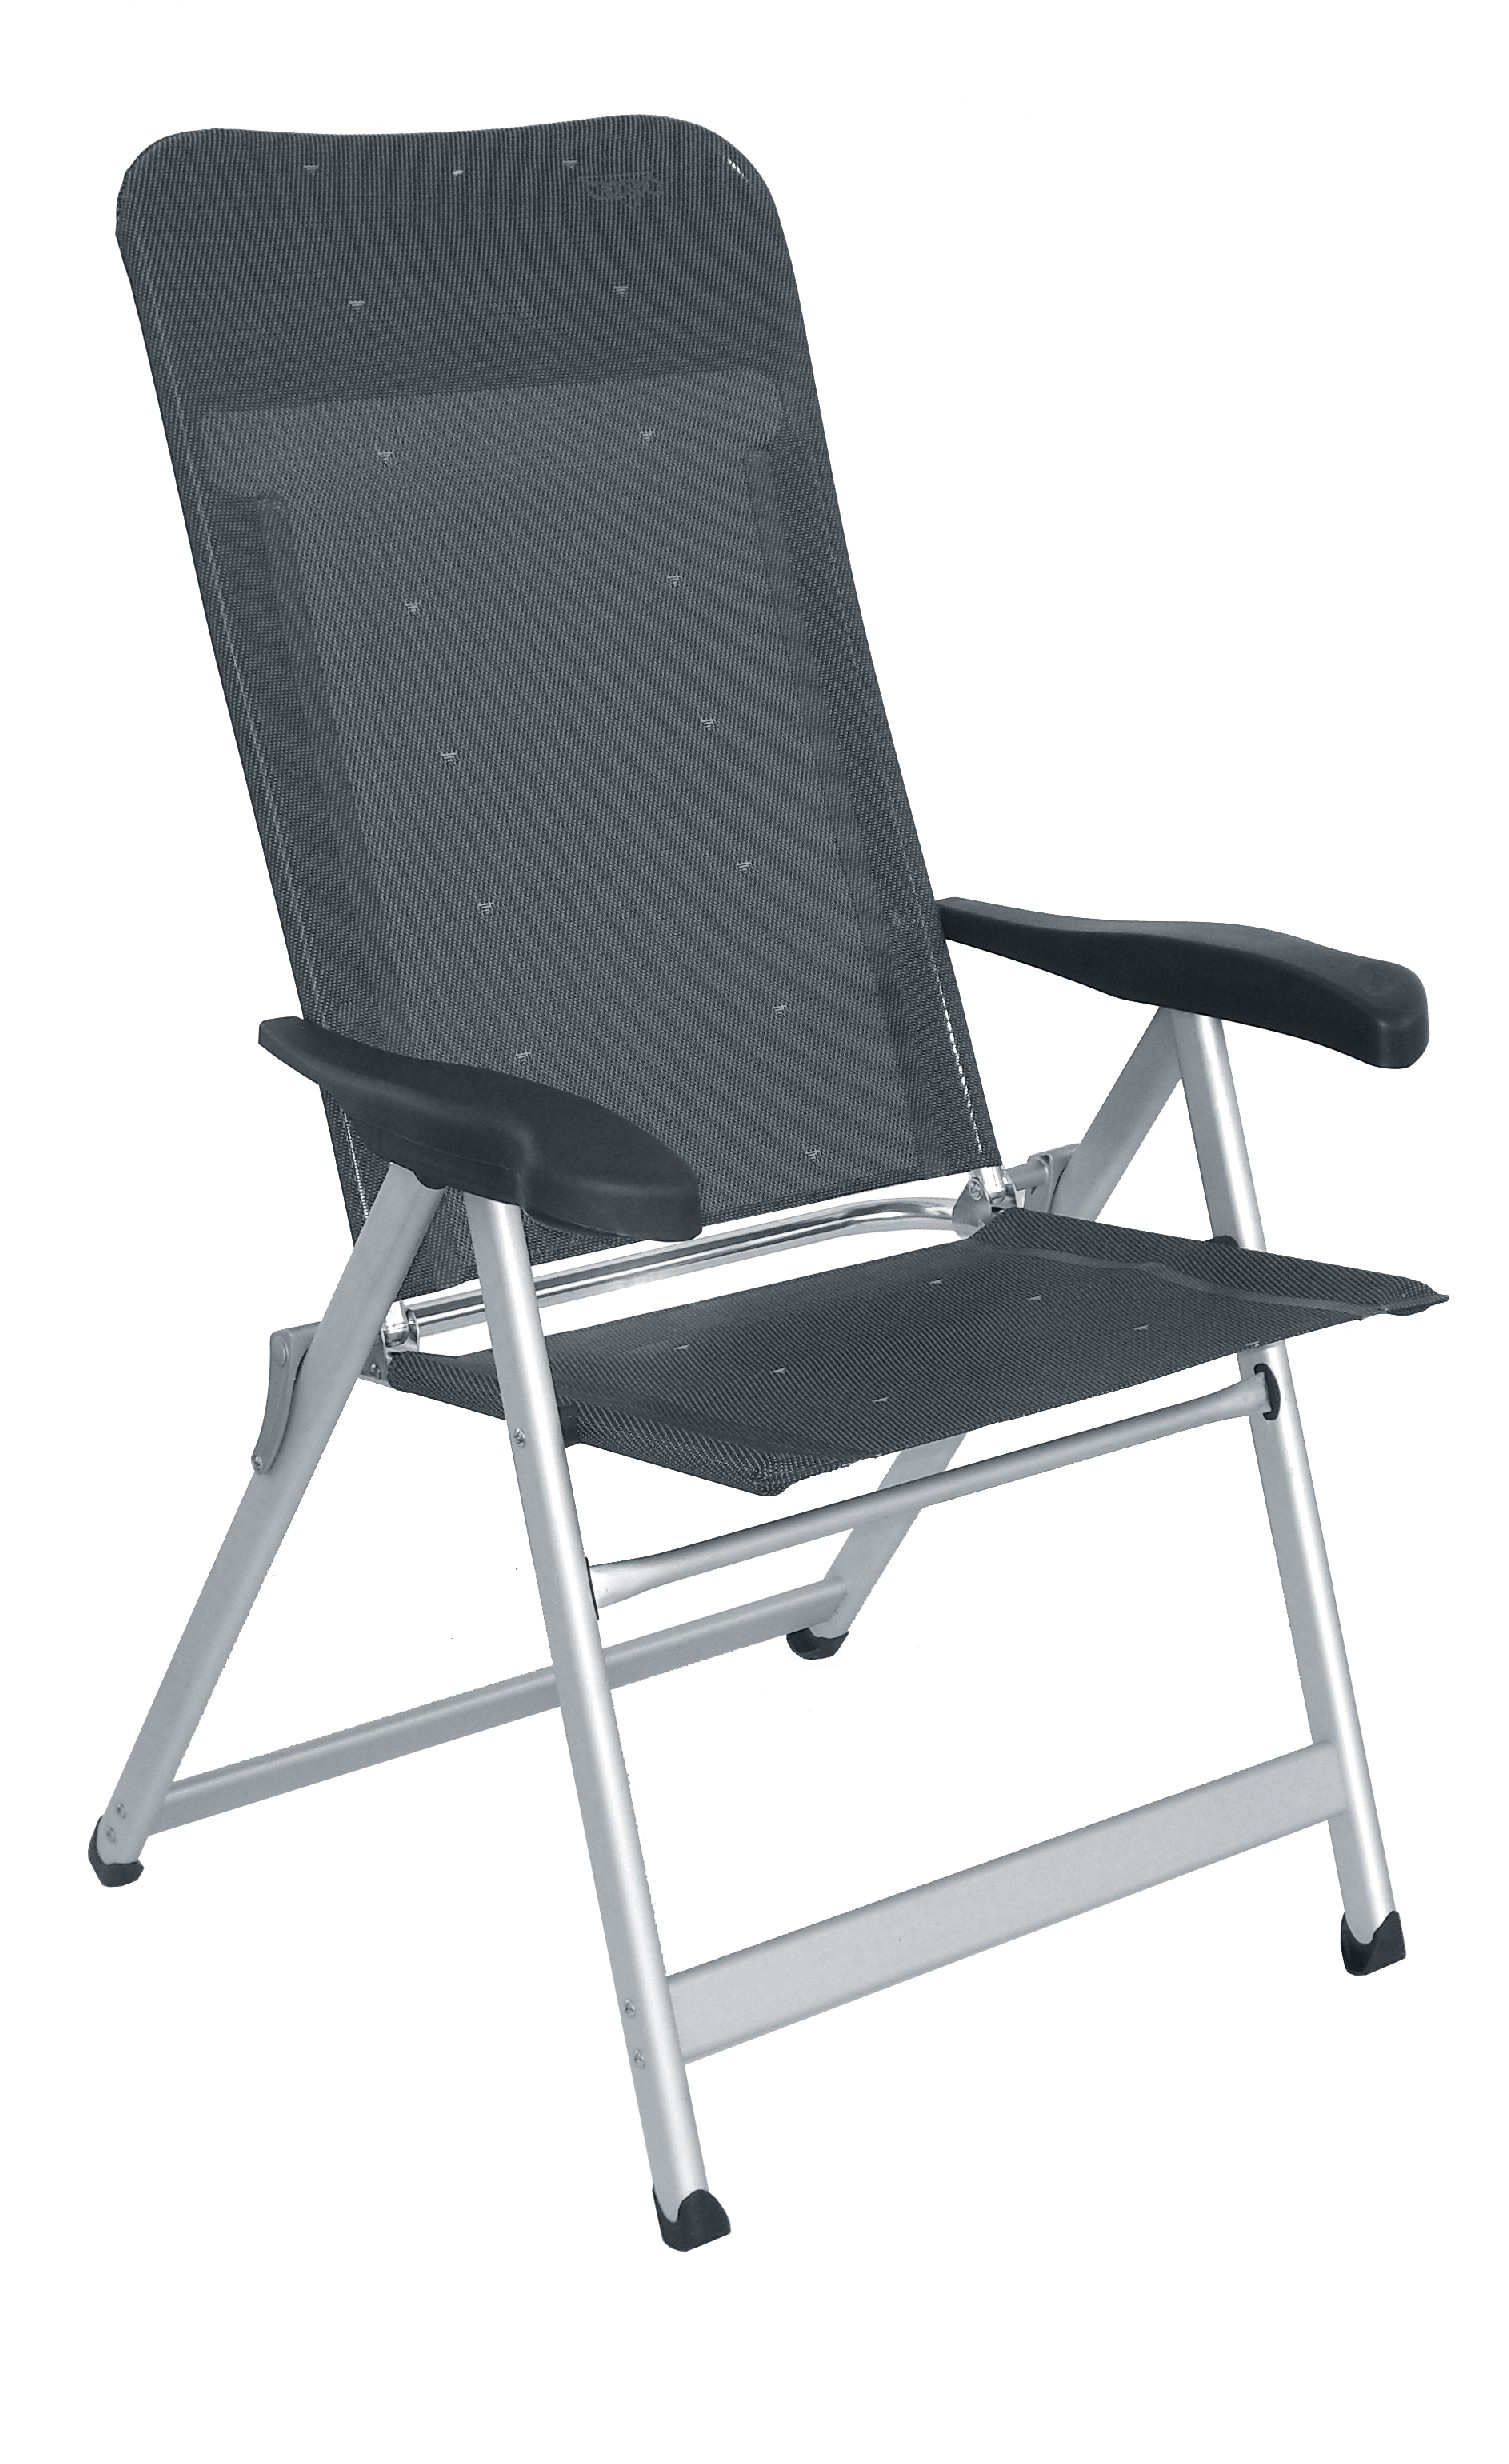 best camping chairs office chair accessories parts spanish firm crespo has again won the